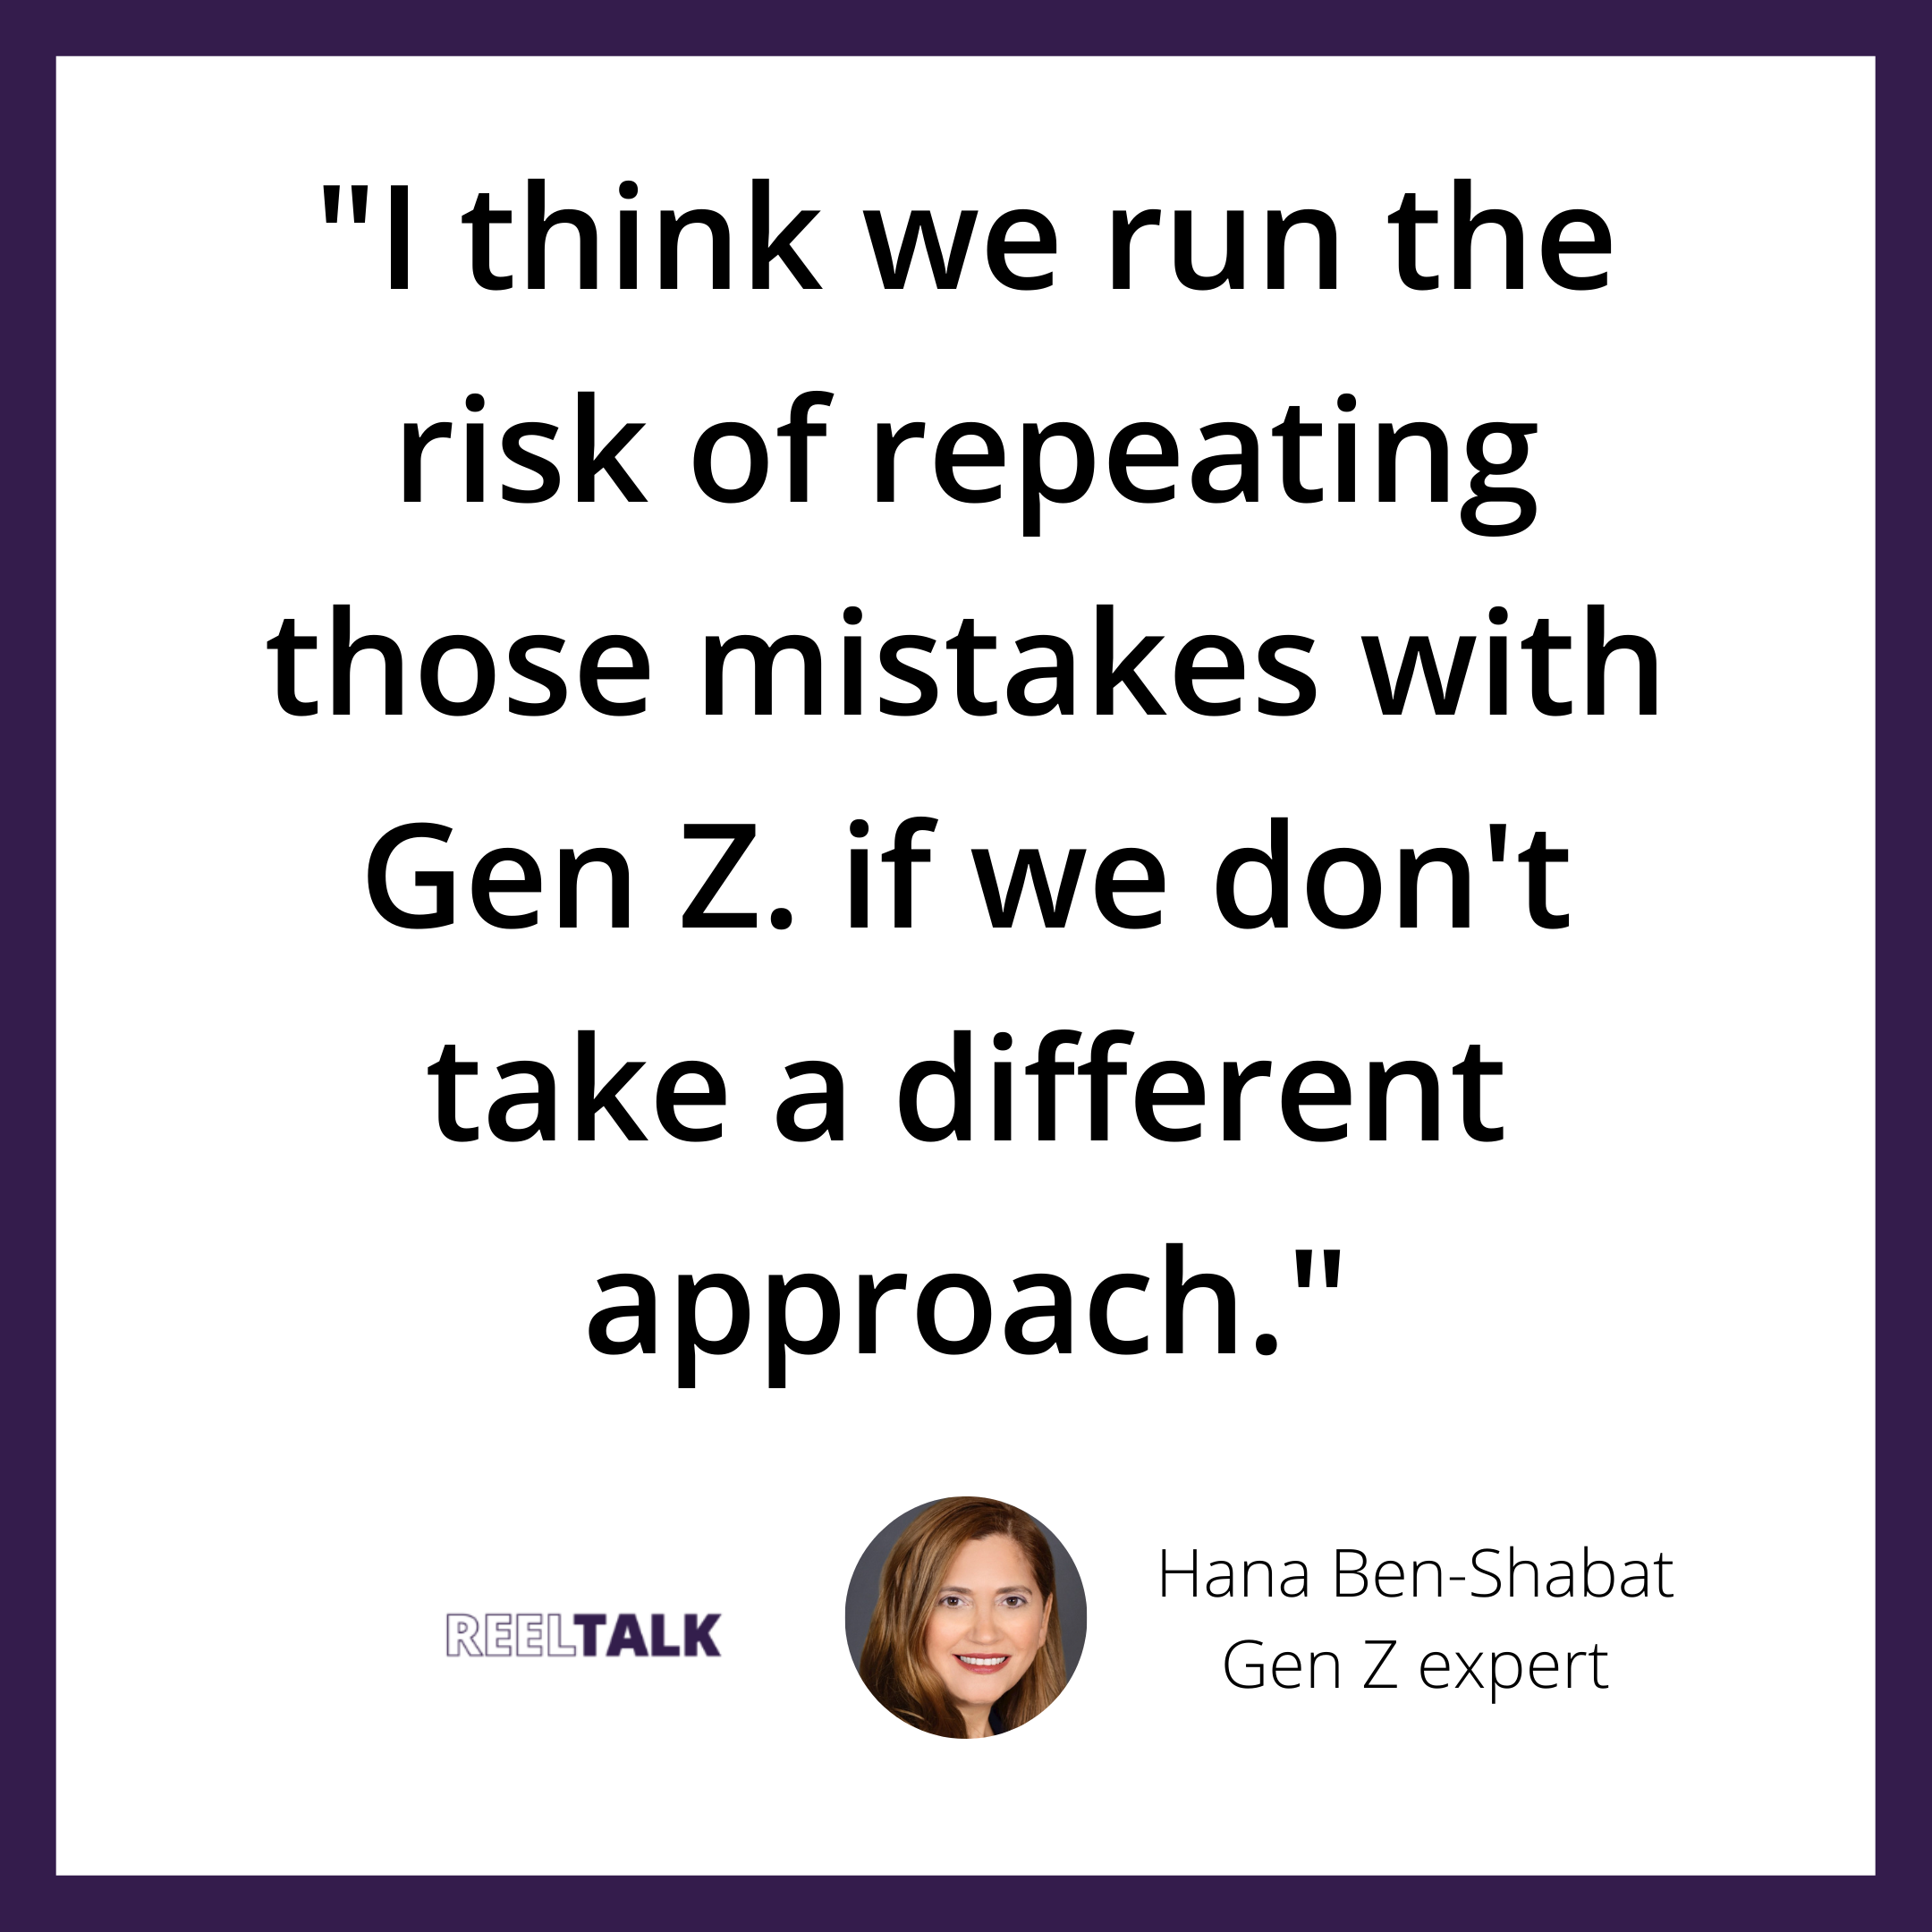 I think we run the risk of repeating those mistakes with Gen Z. if we don't take a different approach. (1)